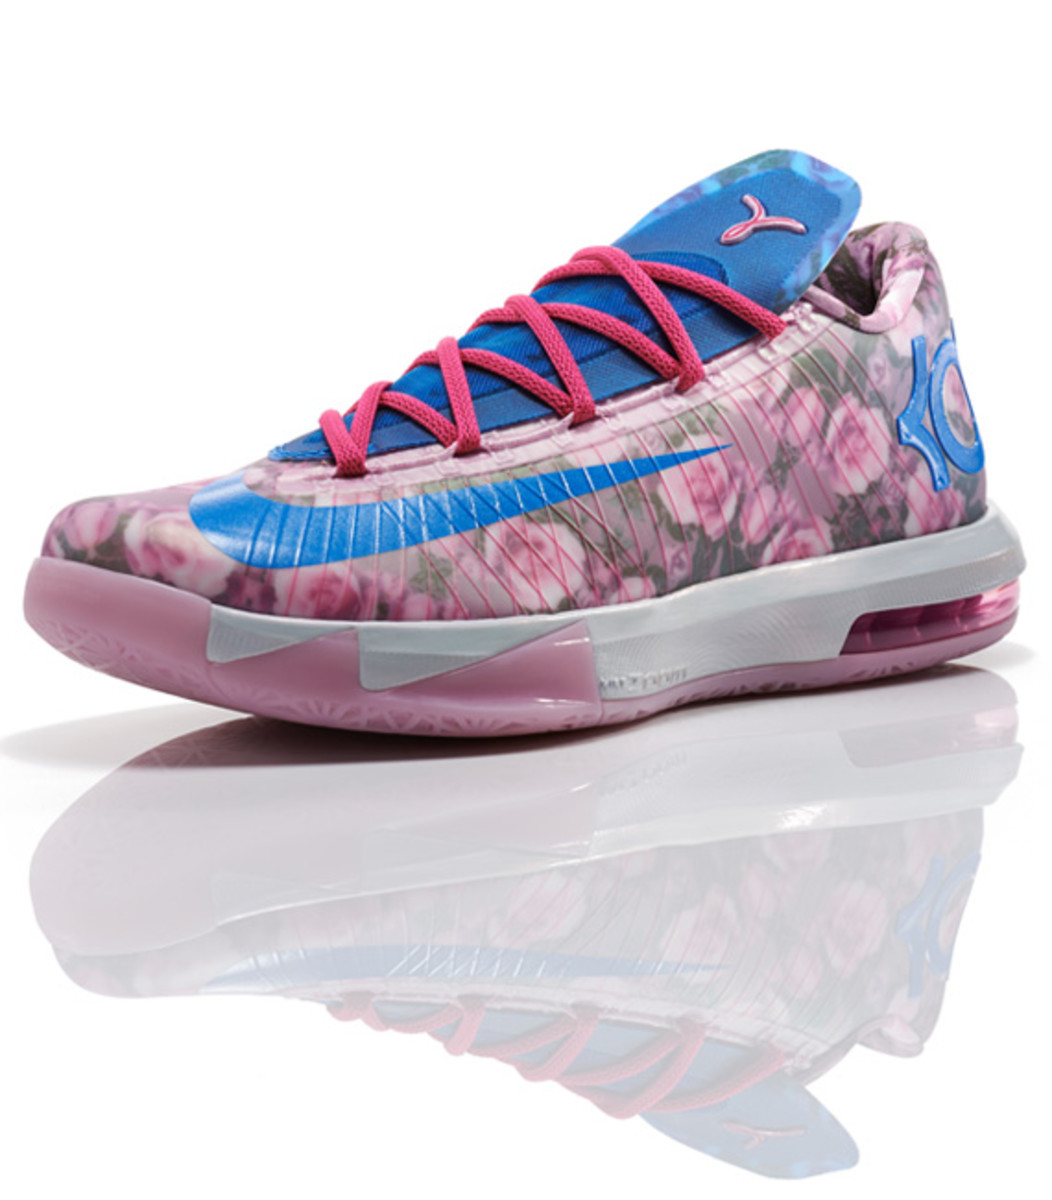 nike-kd-6-aunt-pearl-collection-officially-unveiled02